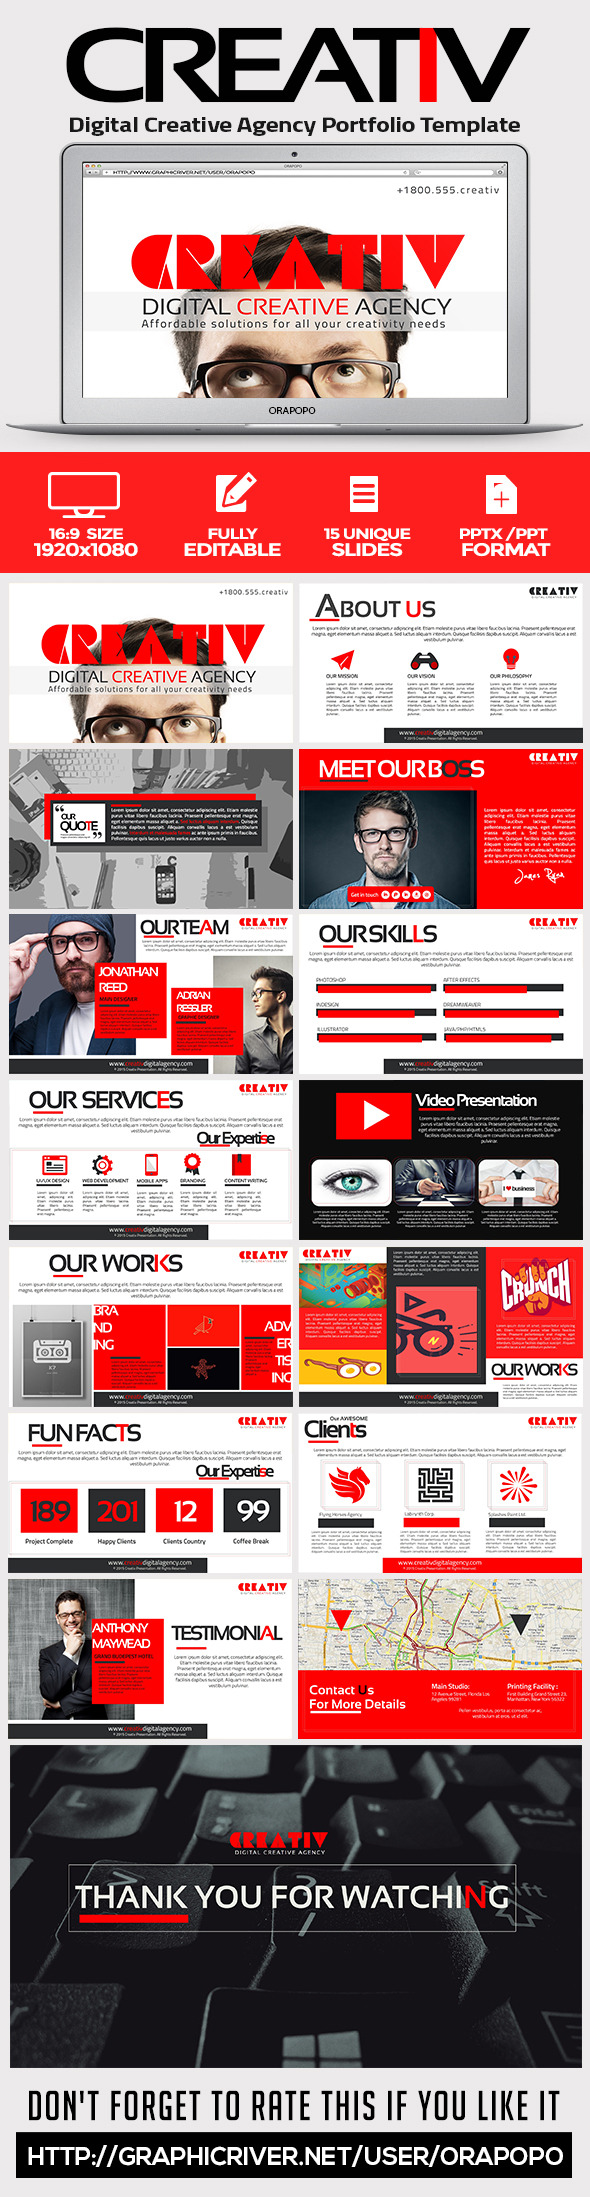 GraphicRiver Creativ Digital Creative Agency Portfolio Template 11402738